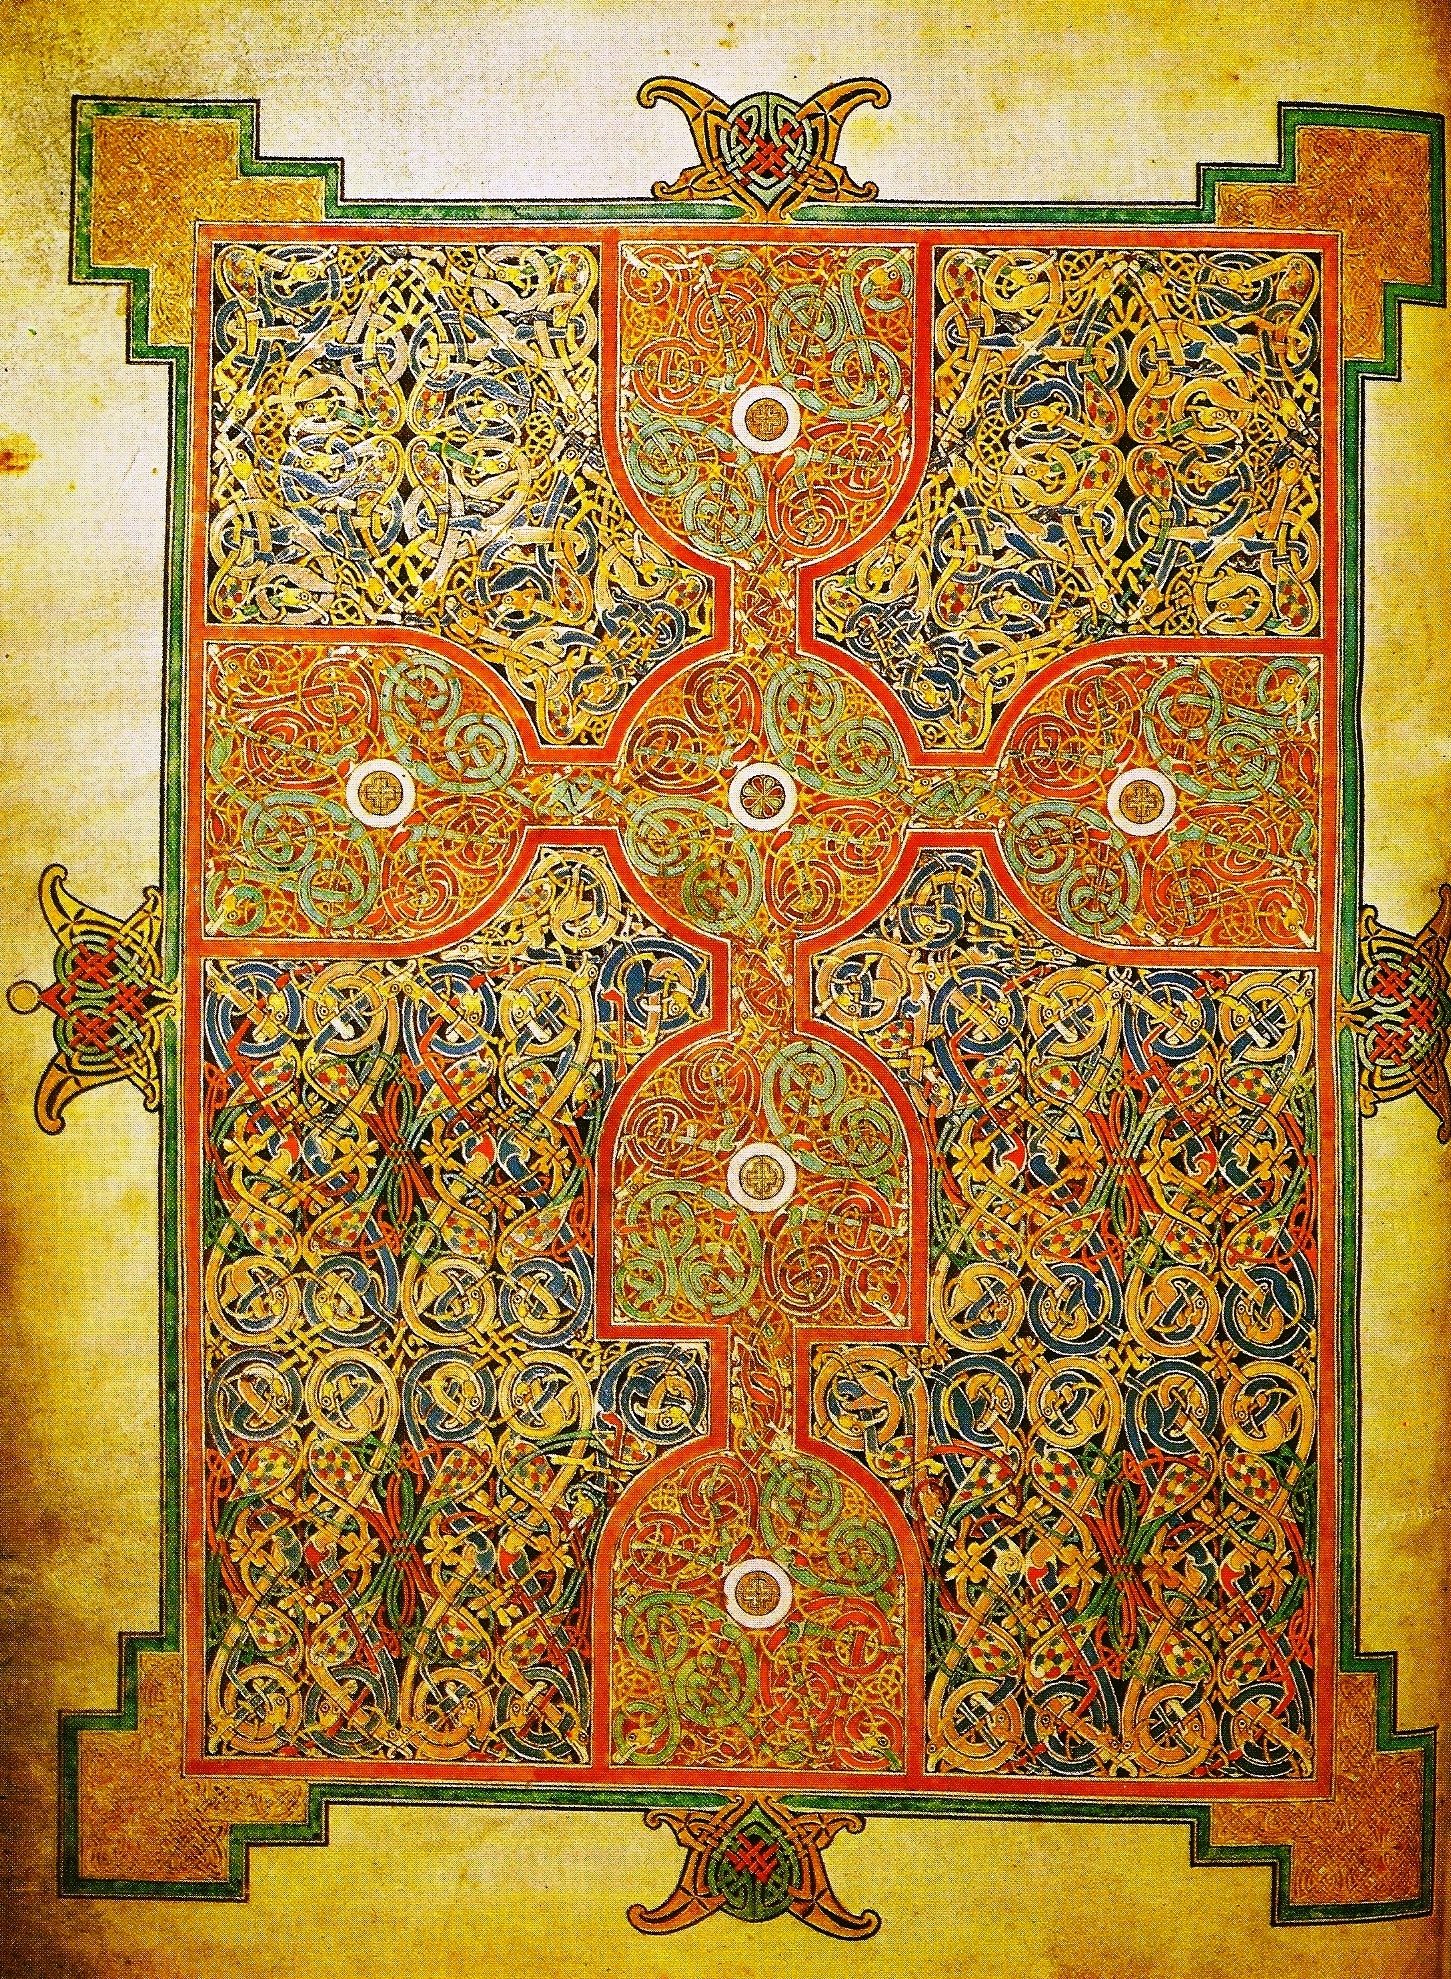 Lg Carpet Page Matthew on Life In The Middle Ages Book